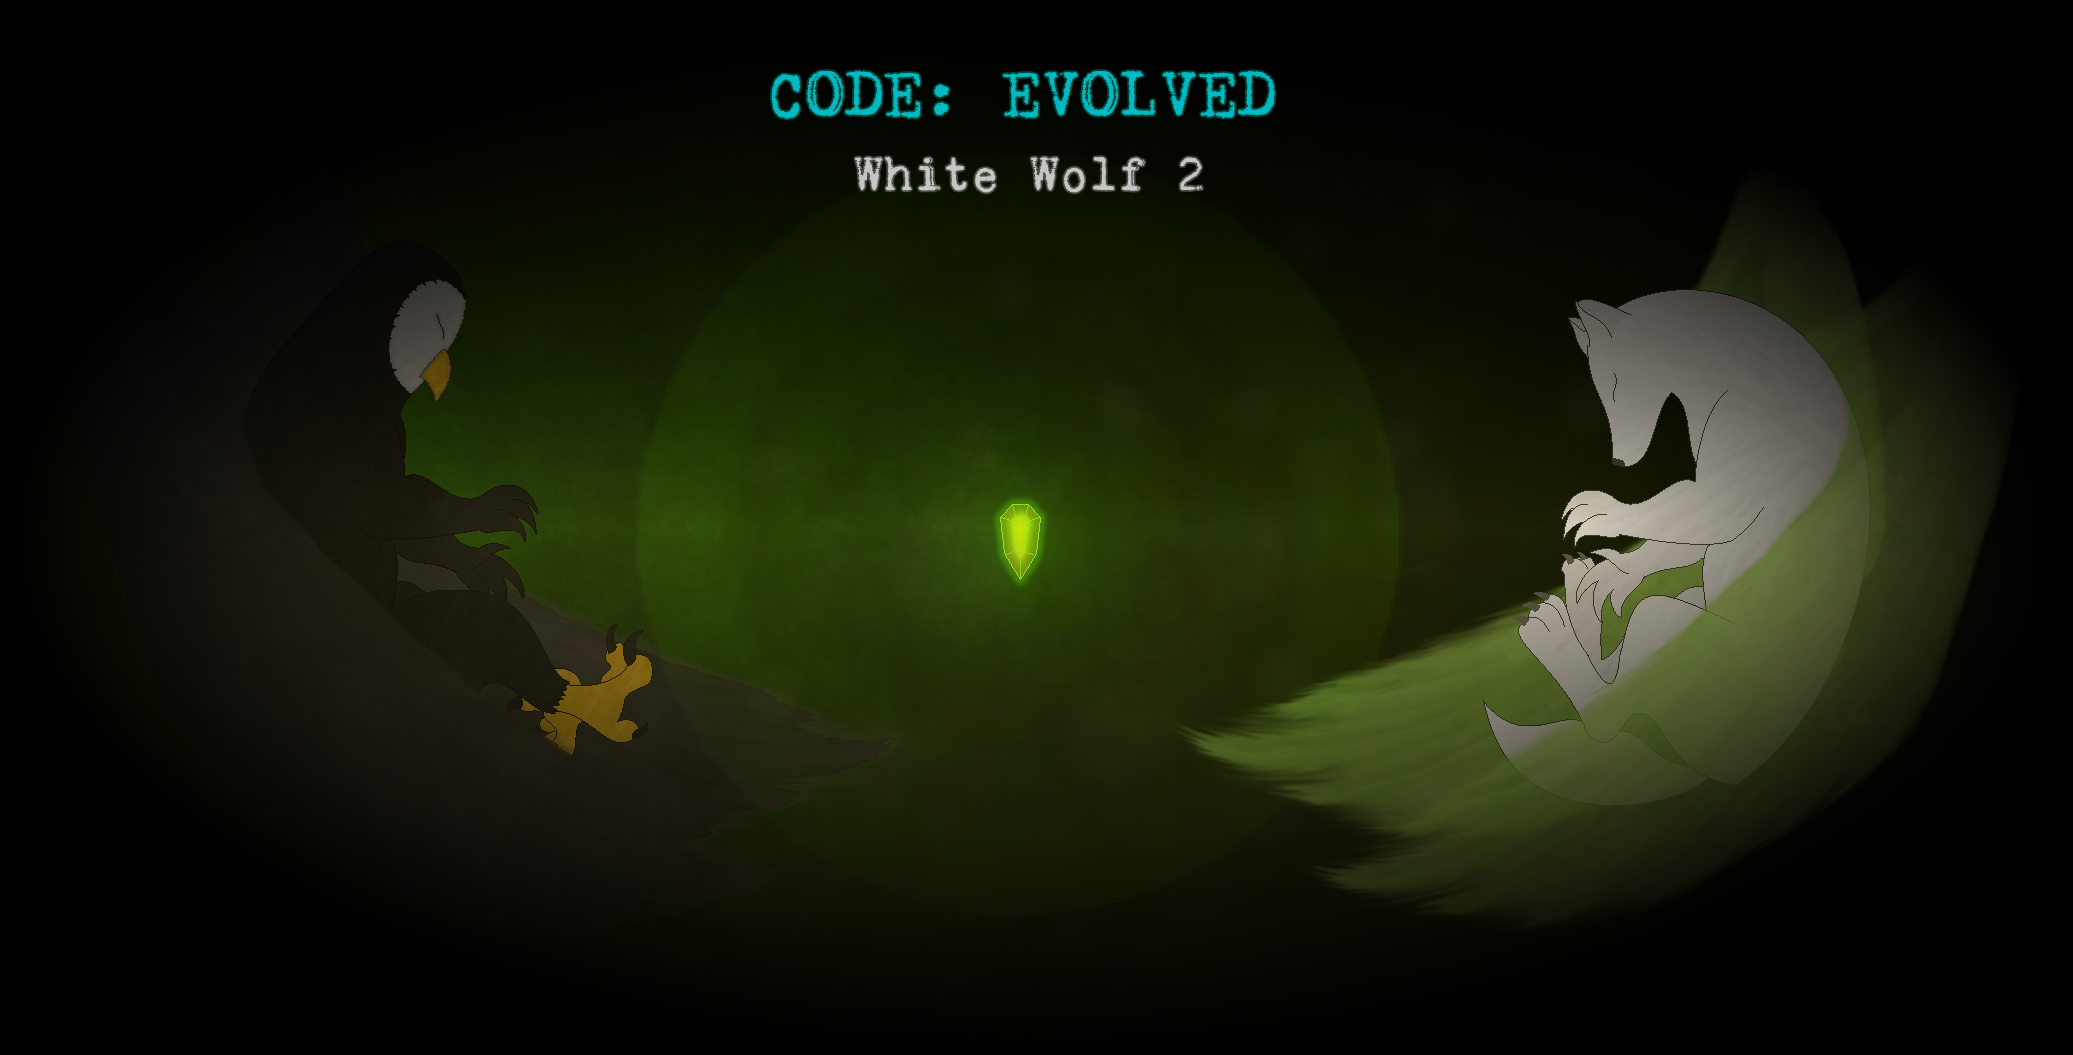 Code: Evolved - White Wolf 2